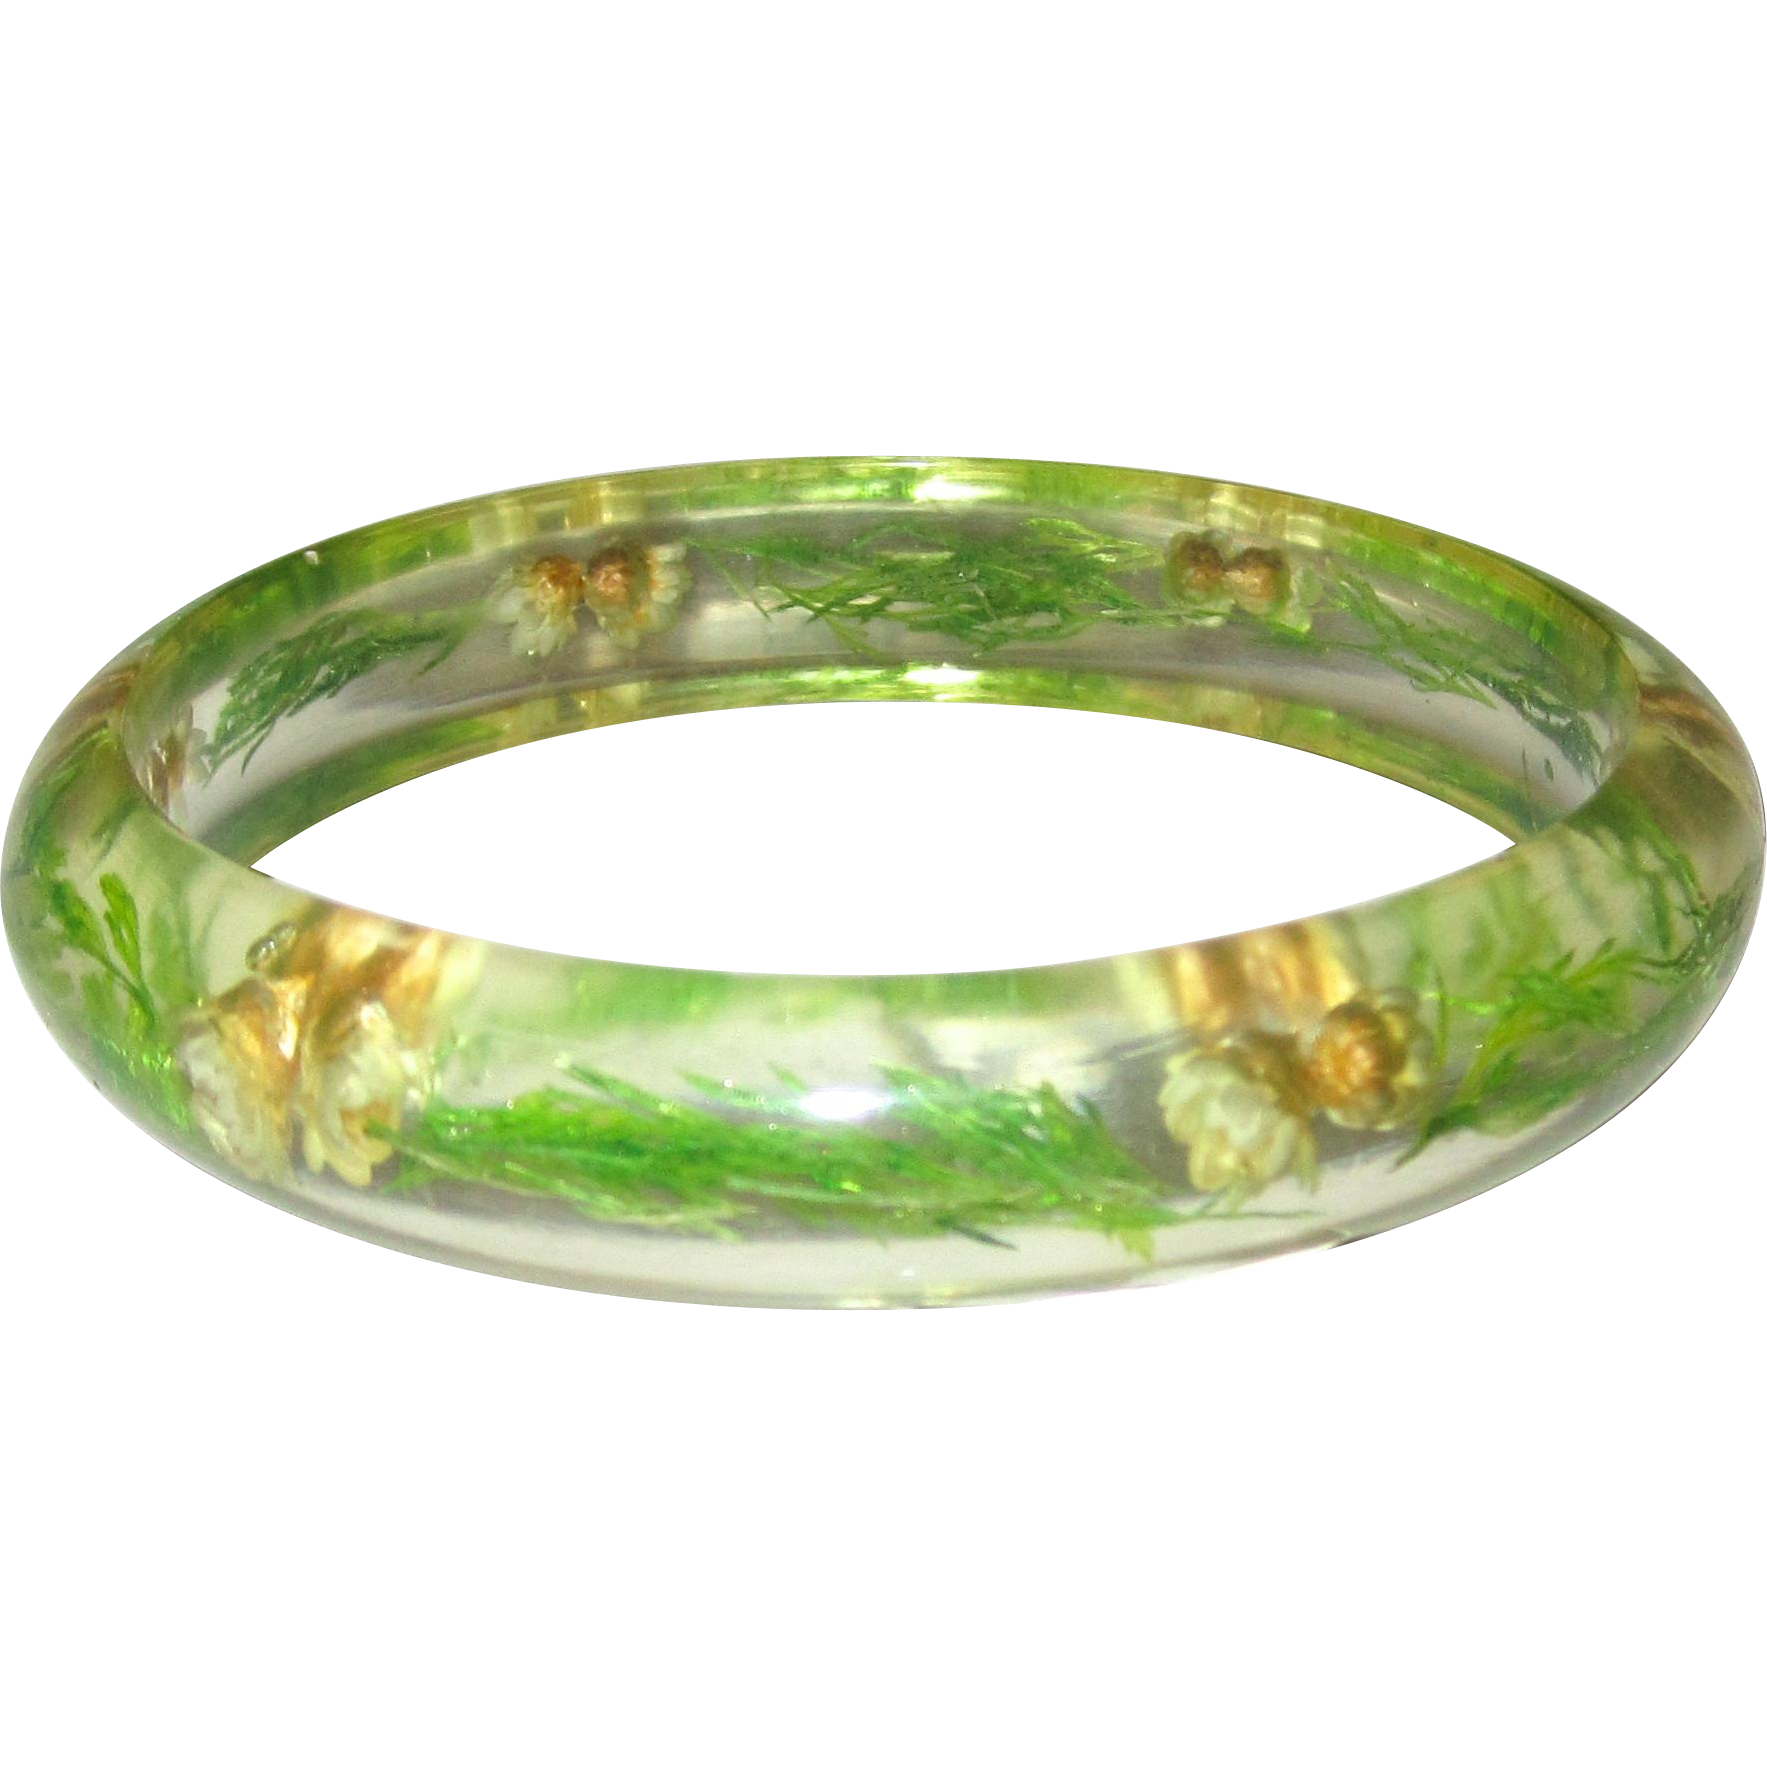 Lucite Bangle Bracelet with Flowers and Ferns -- Larger Size